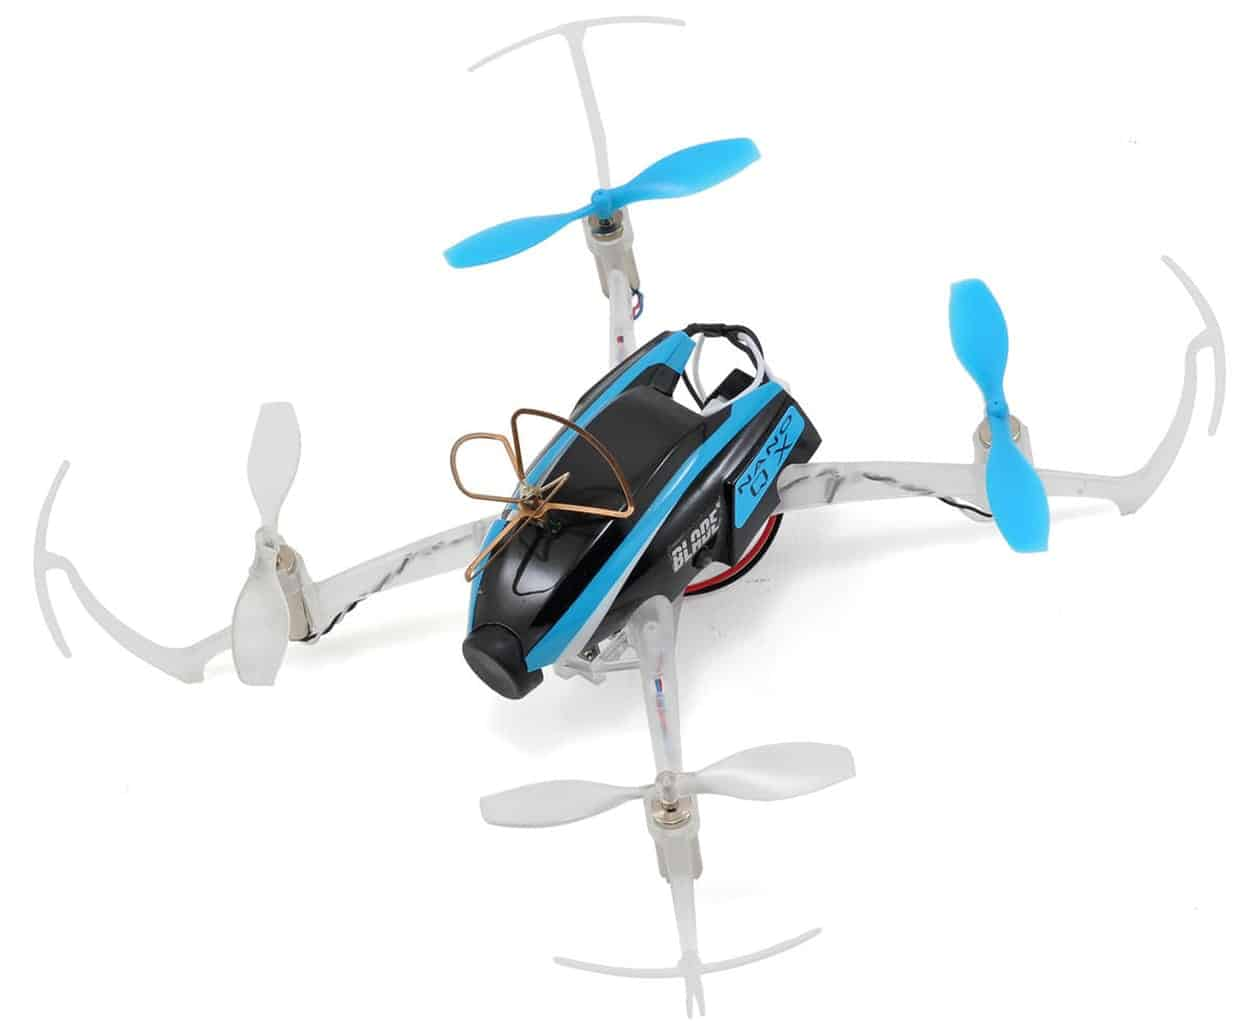 Top 23 RC Drones for Sale | UAV Coach 2019 Buying Guide